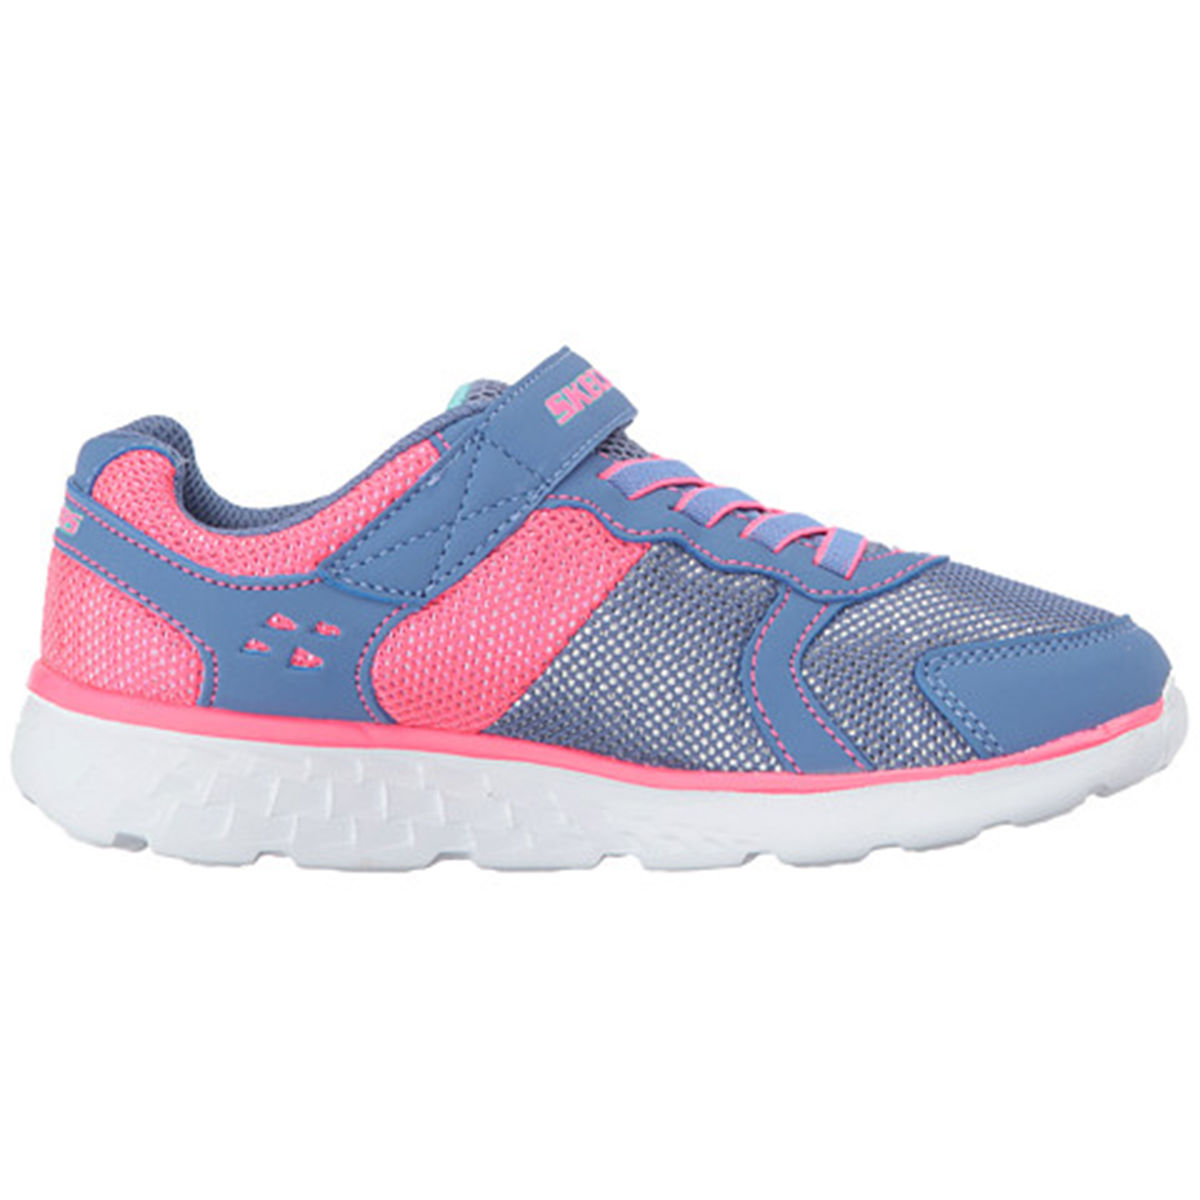 Skechers Go Run Preschool Girls Casual Shoe